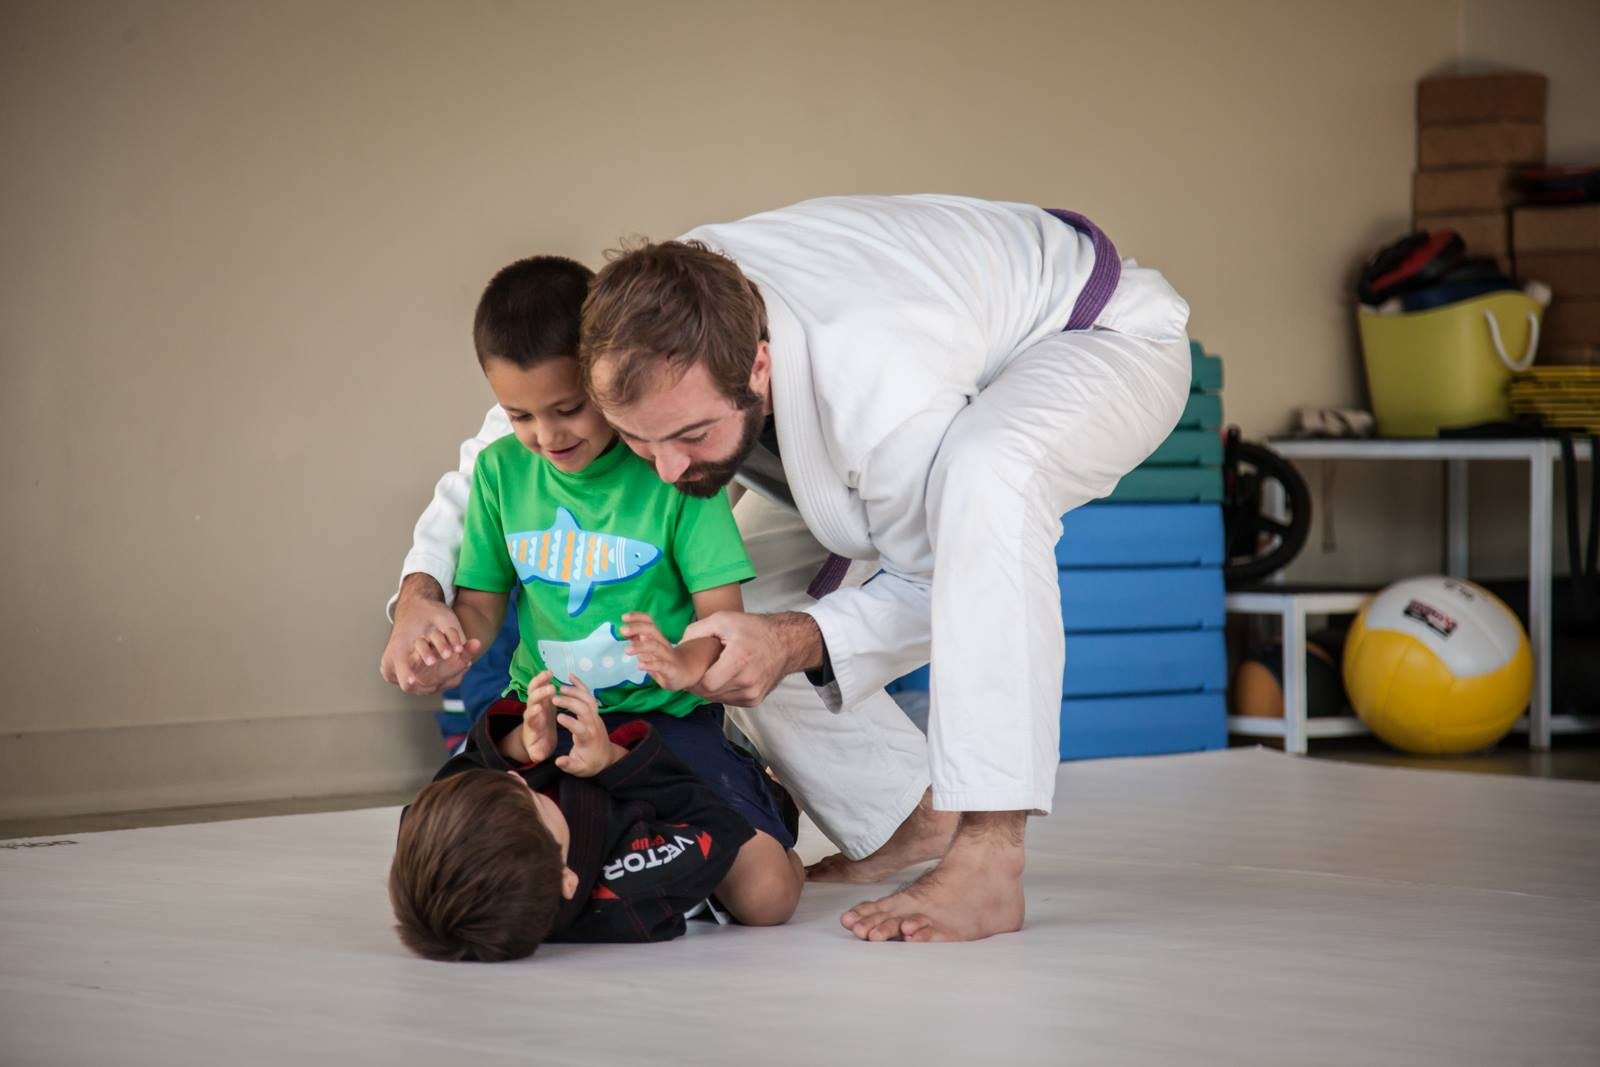 Parker and I showing a new student how to use the mount position